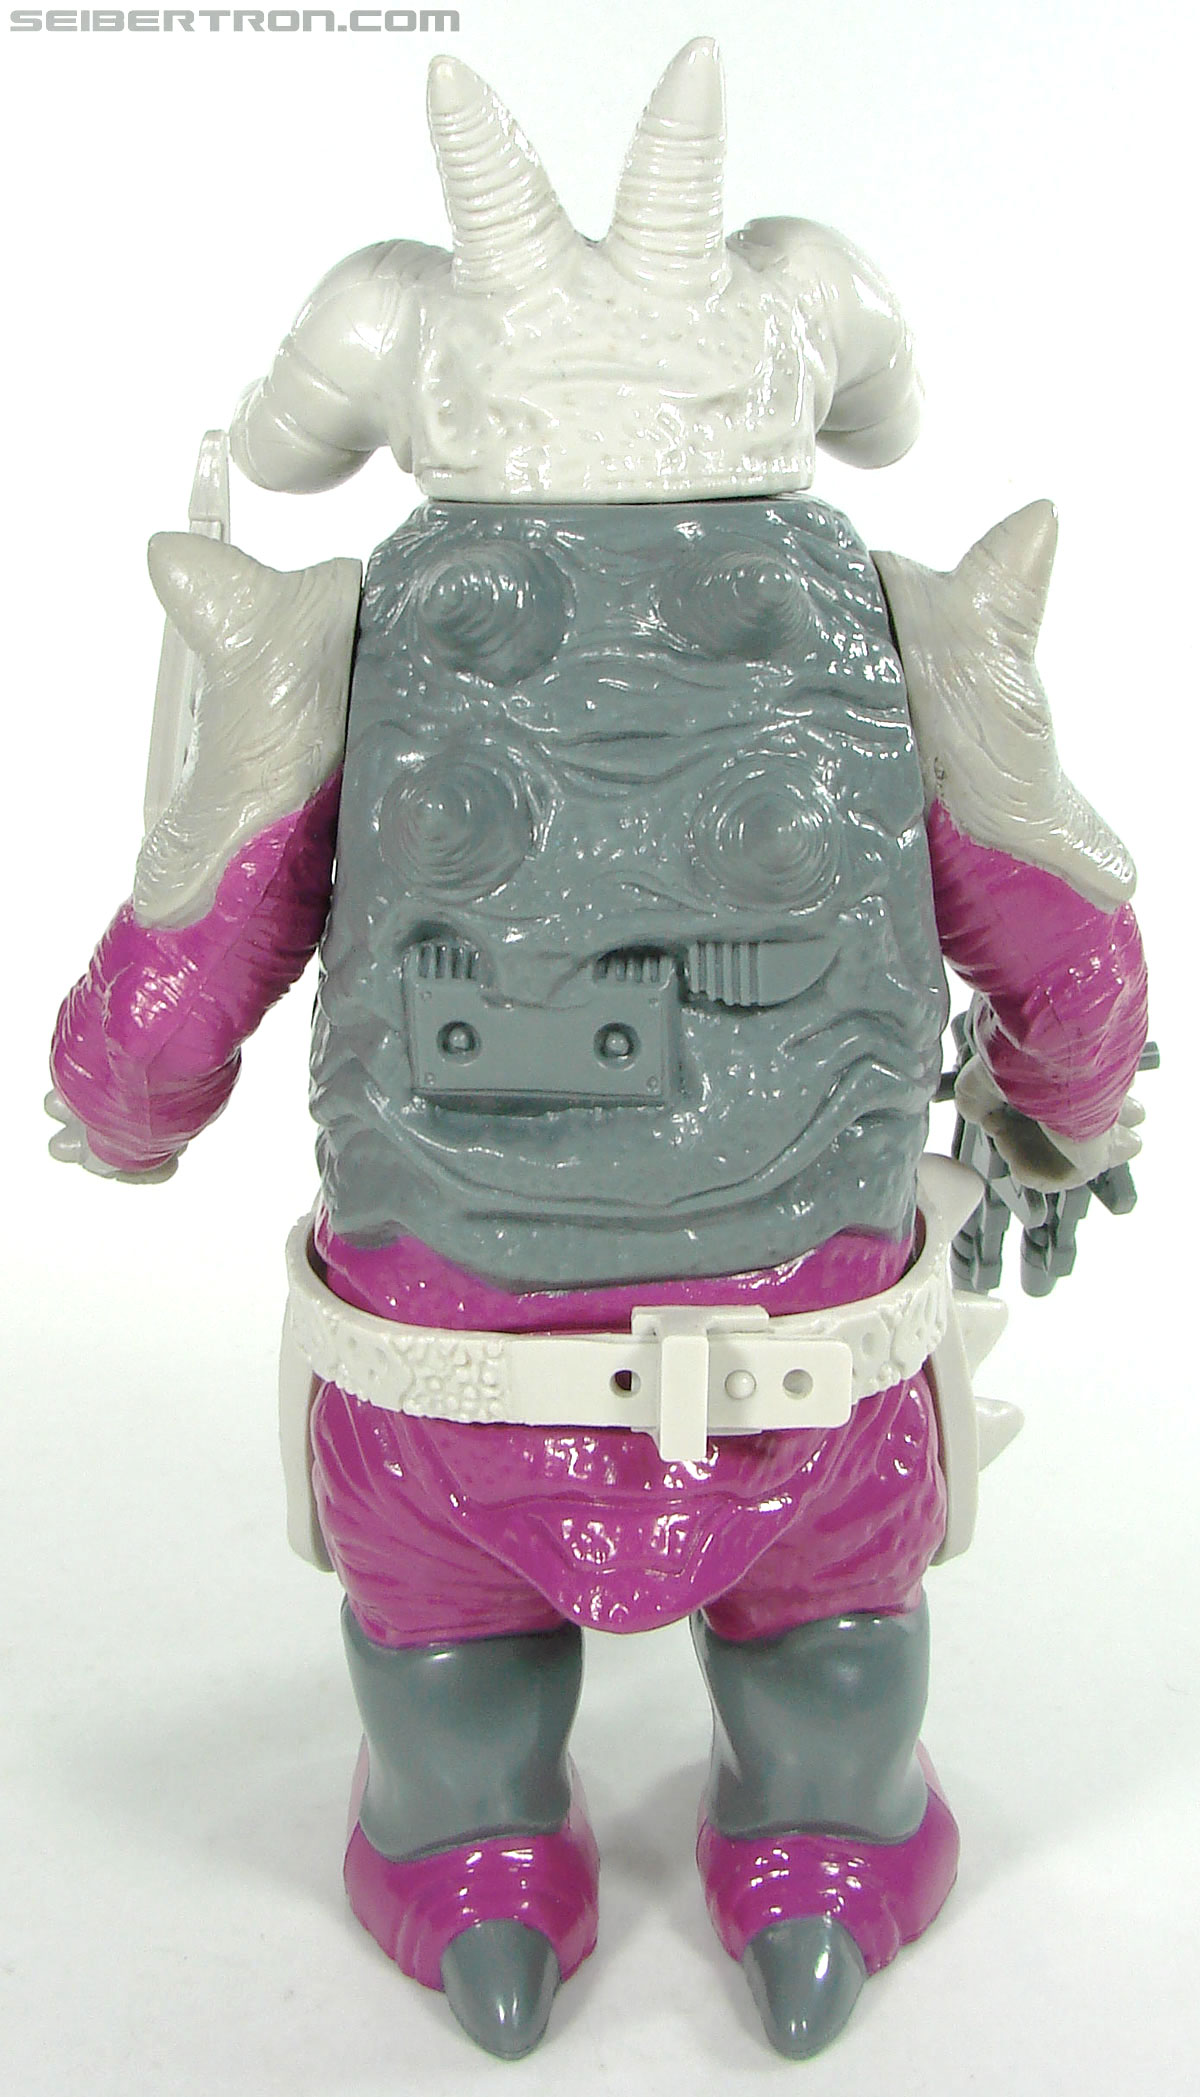 Transformers Super God Masterforce Skullgrin (Dauros) (Image #63 of 196)